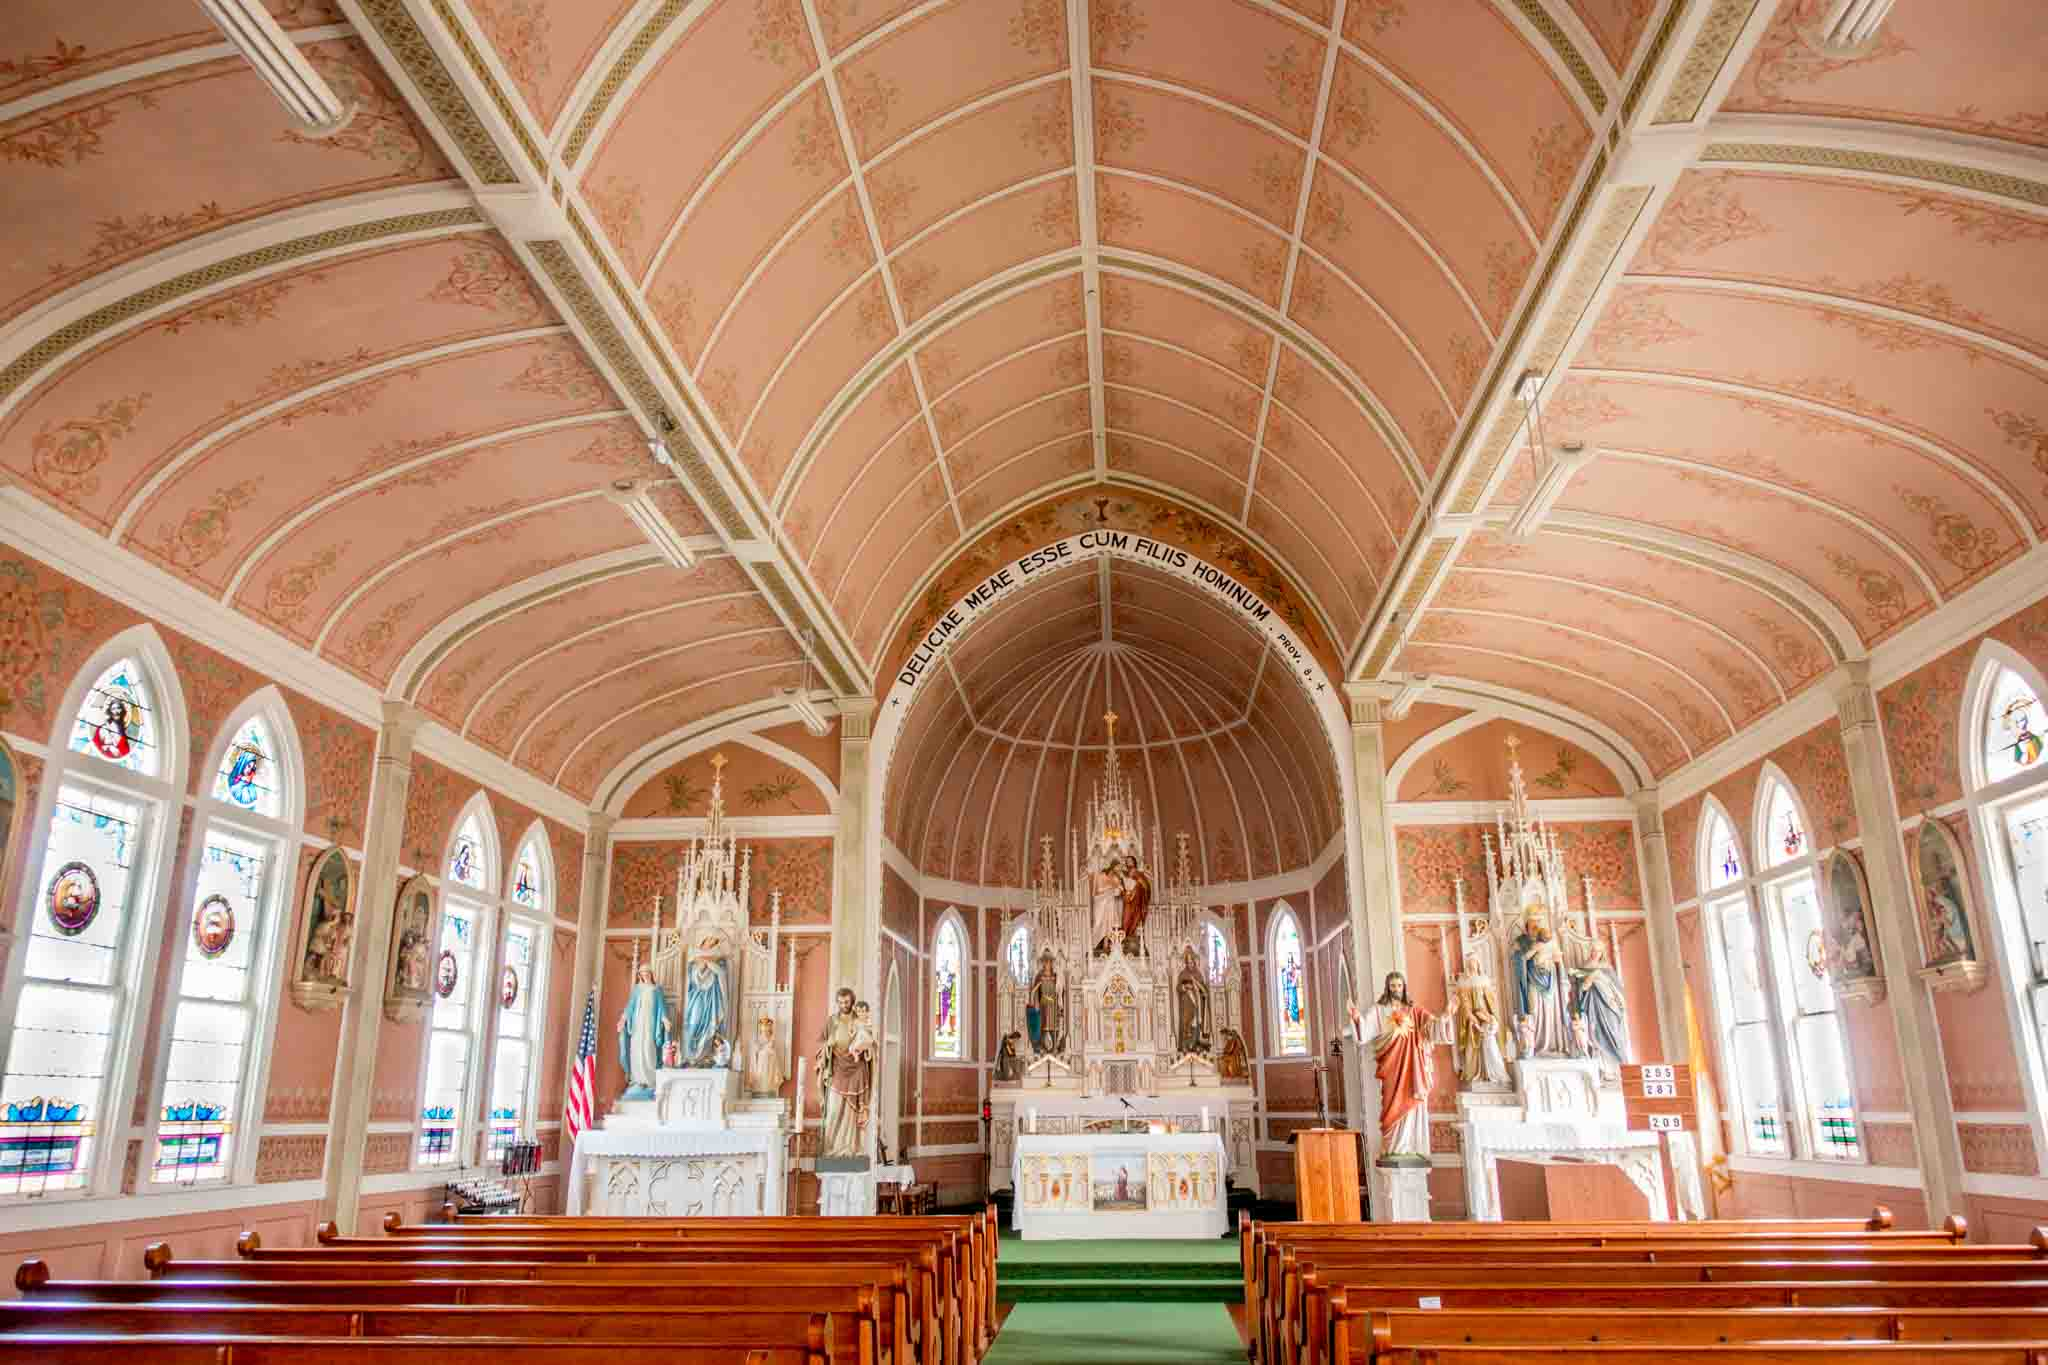 St. John the Baptist in Ammannsville is one of the churches sometimes known as the Schulenburg painted churches